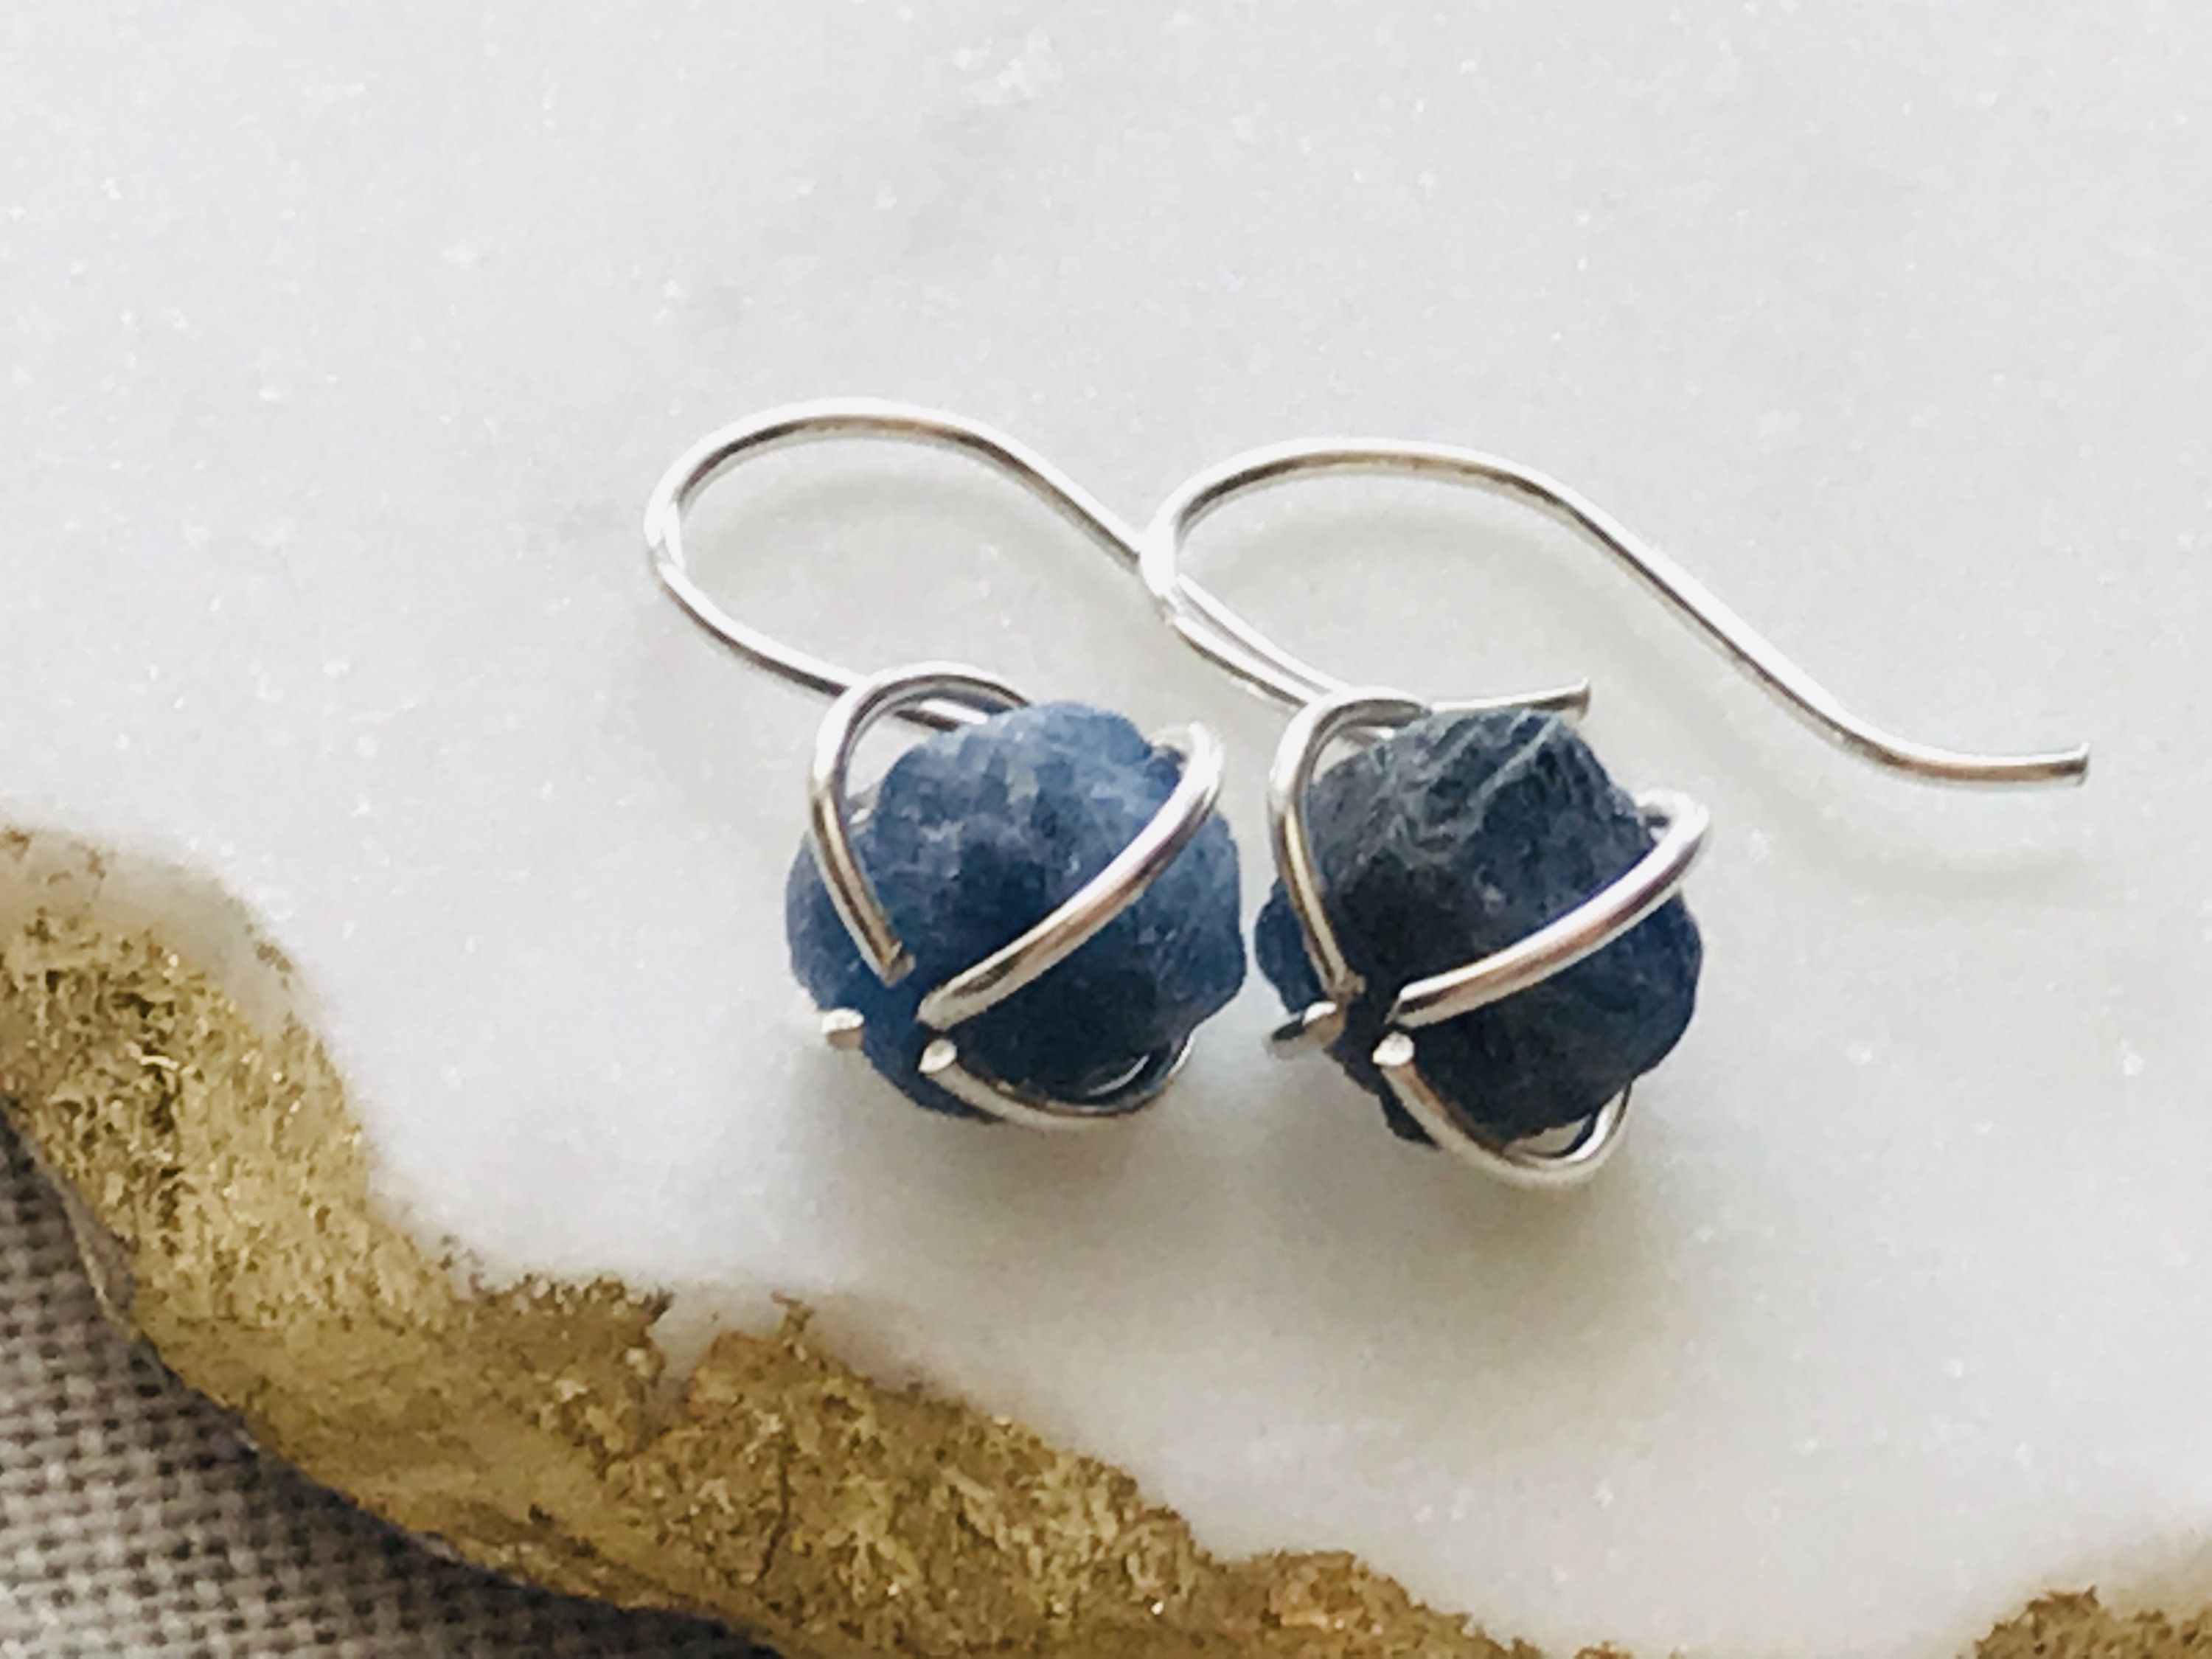 A beautifully natural uncut rough sapphire stone set in a